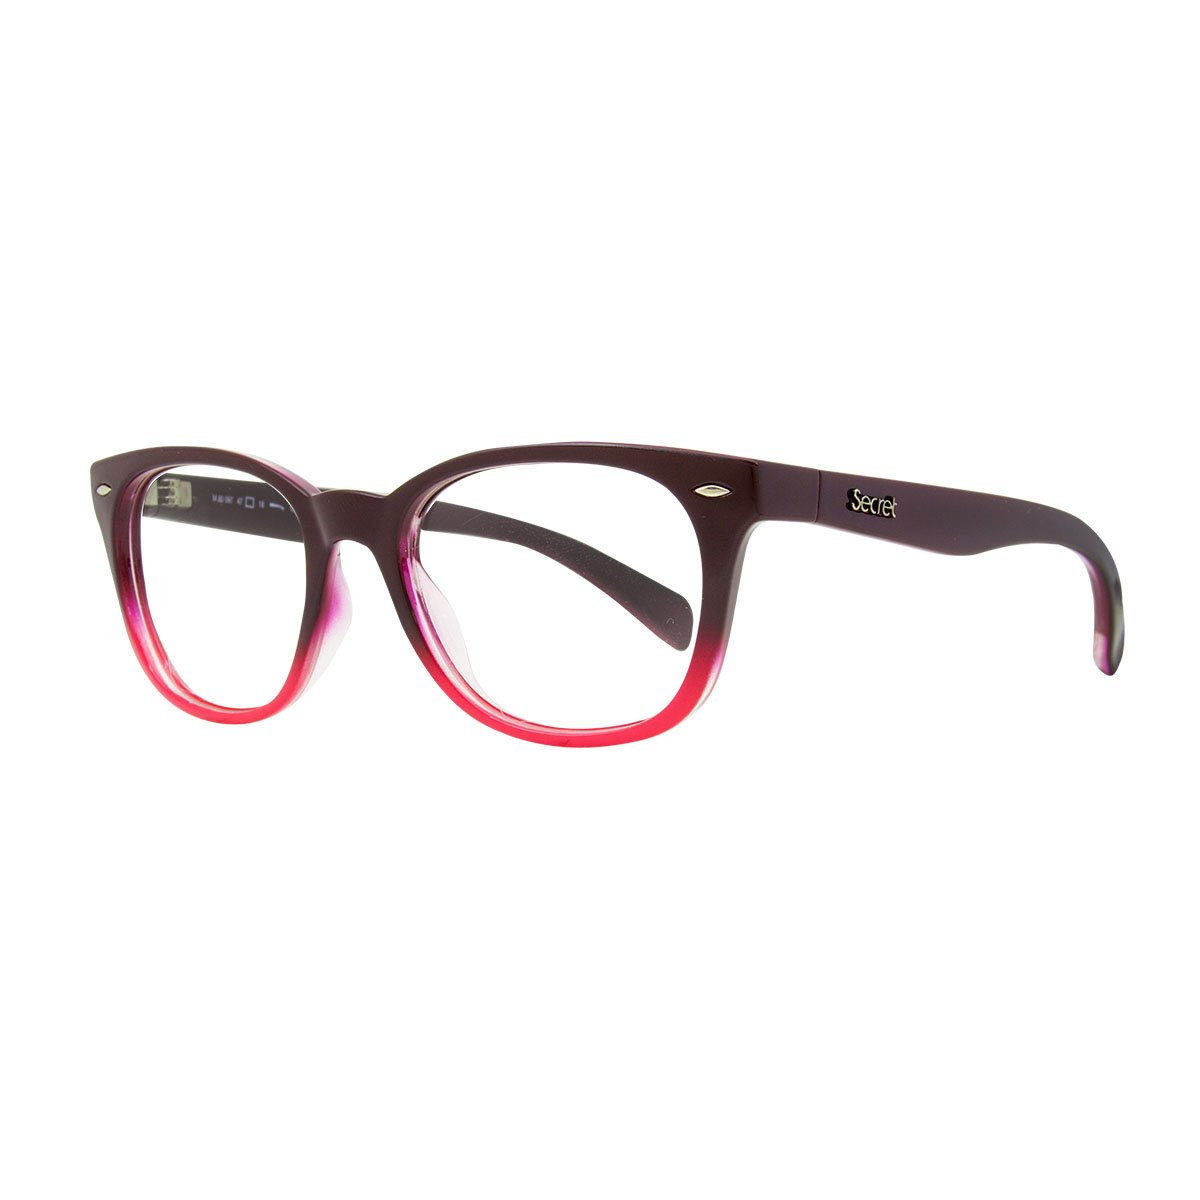 SECRET GRILAMID 80097 FADE PASSIONATE / LUST PINK